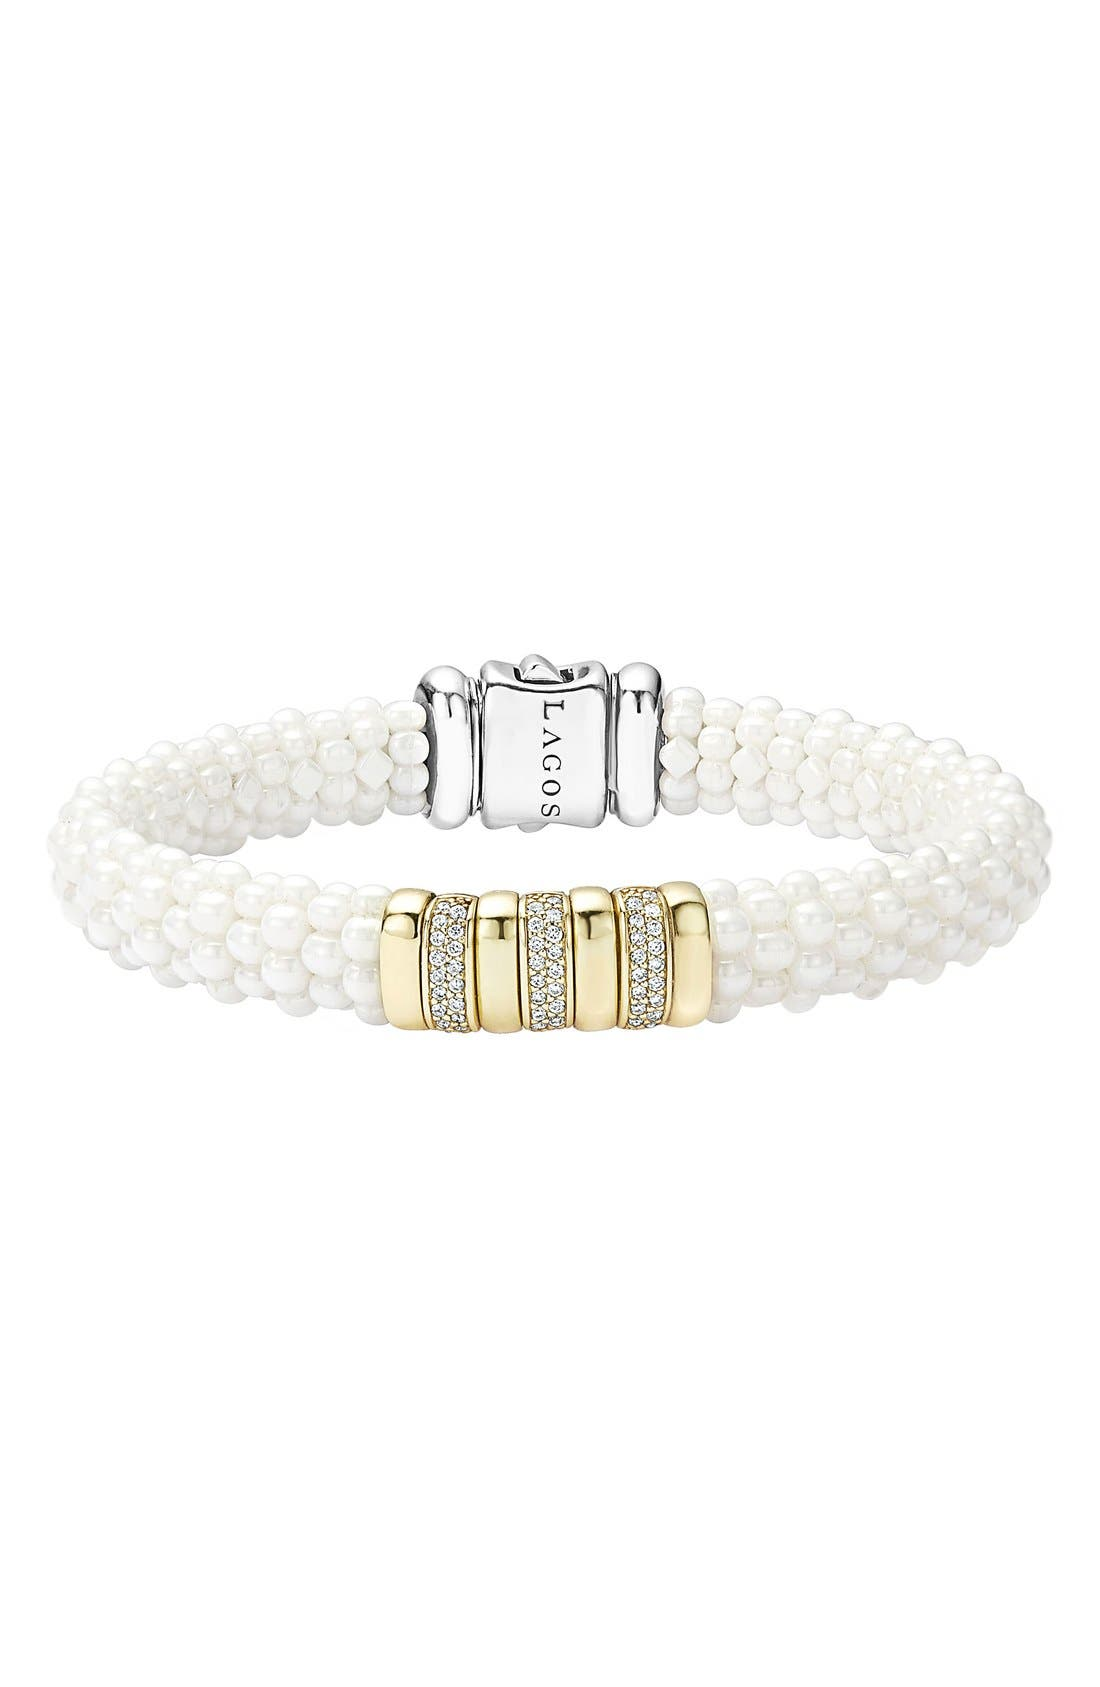 LAGOS 'White Caviar' Triple Pavé Diamond Rope Bracelet